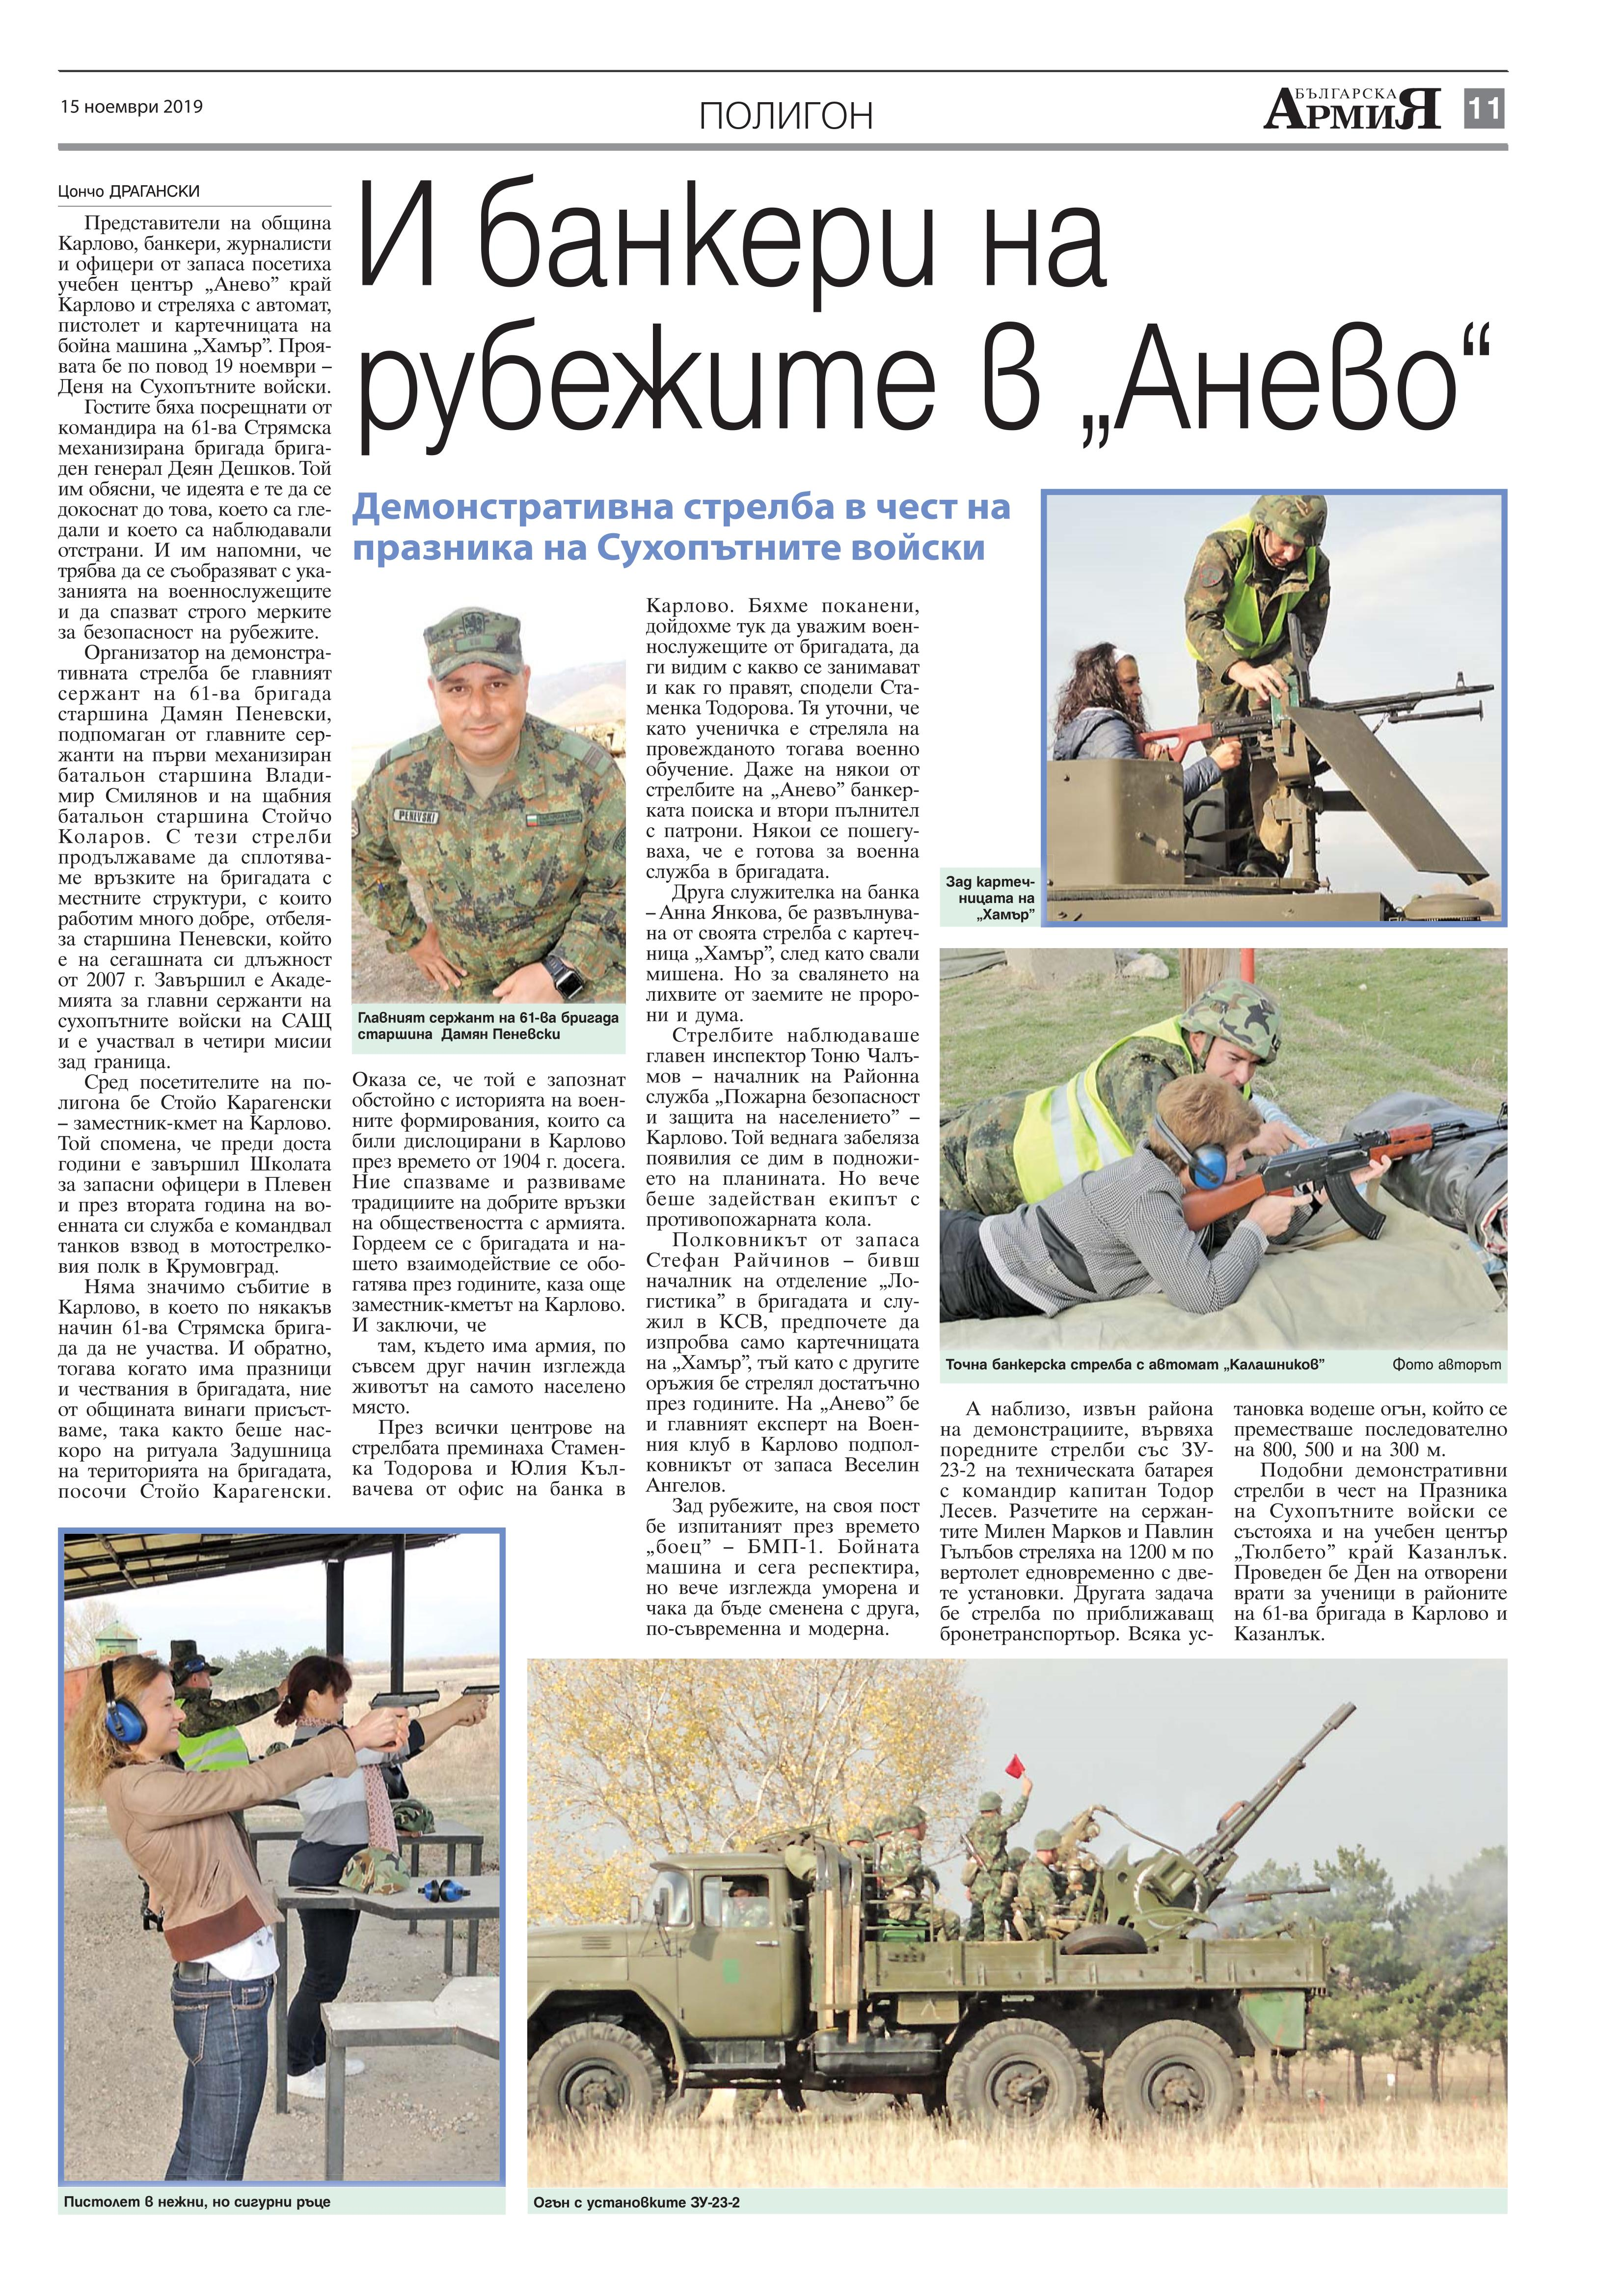 https://www.armymedia.bg/wp-content/uploads/2015/06/11.page1_-116.jpg